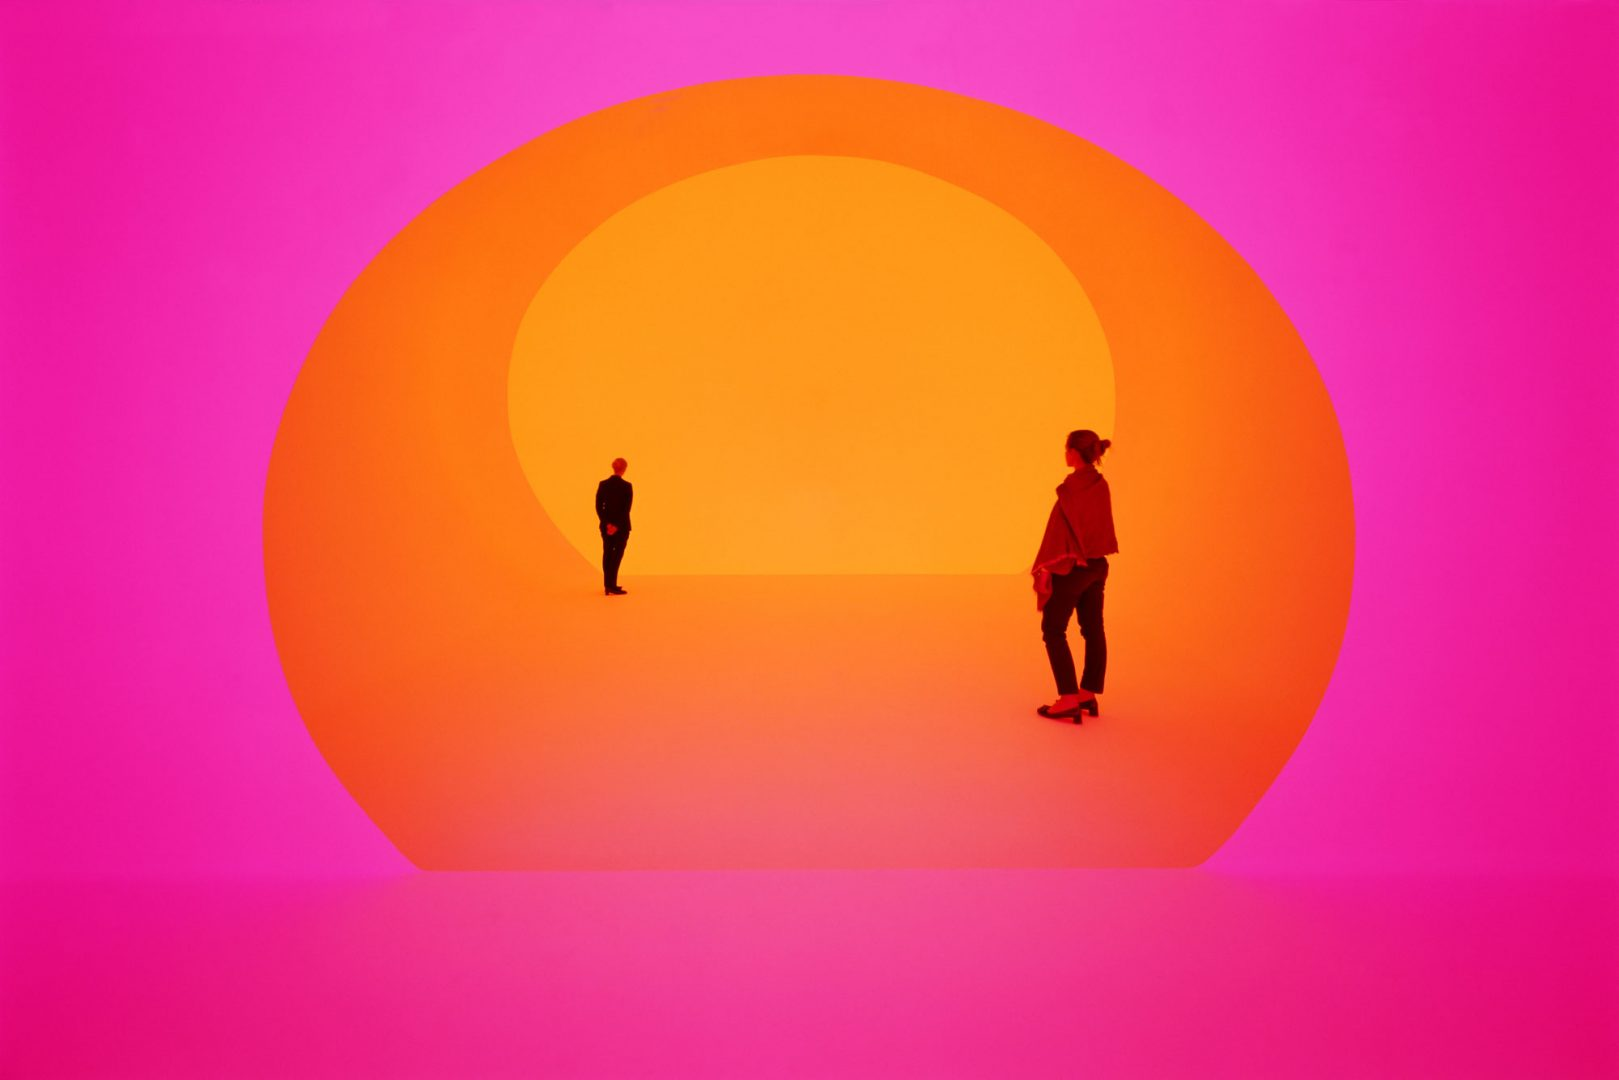 James Turrell – Sculpting light